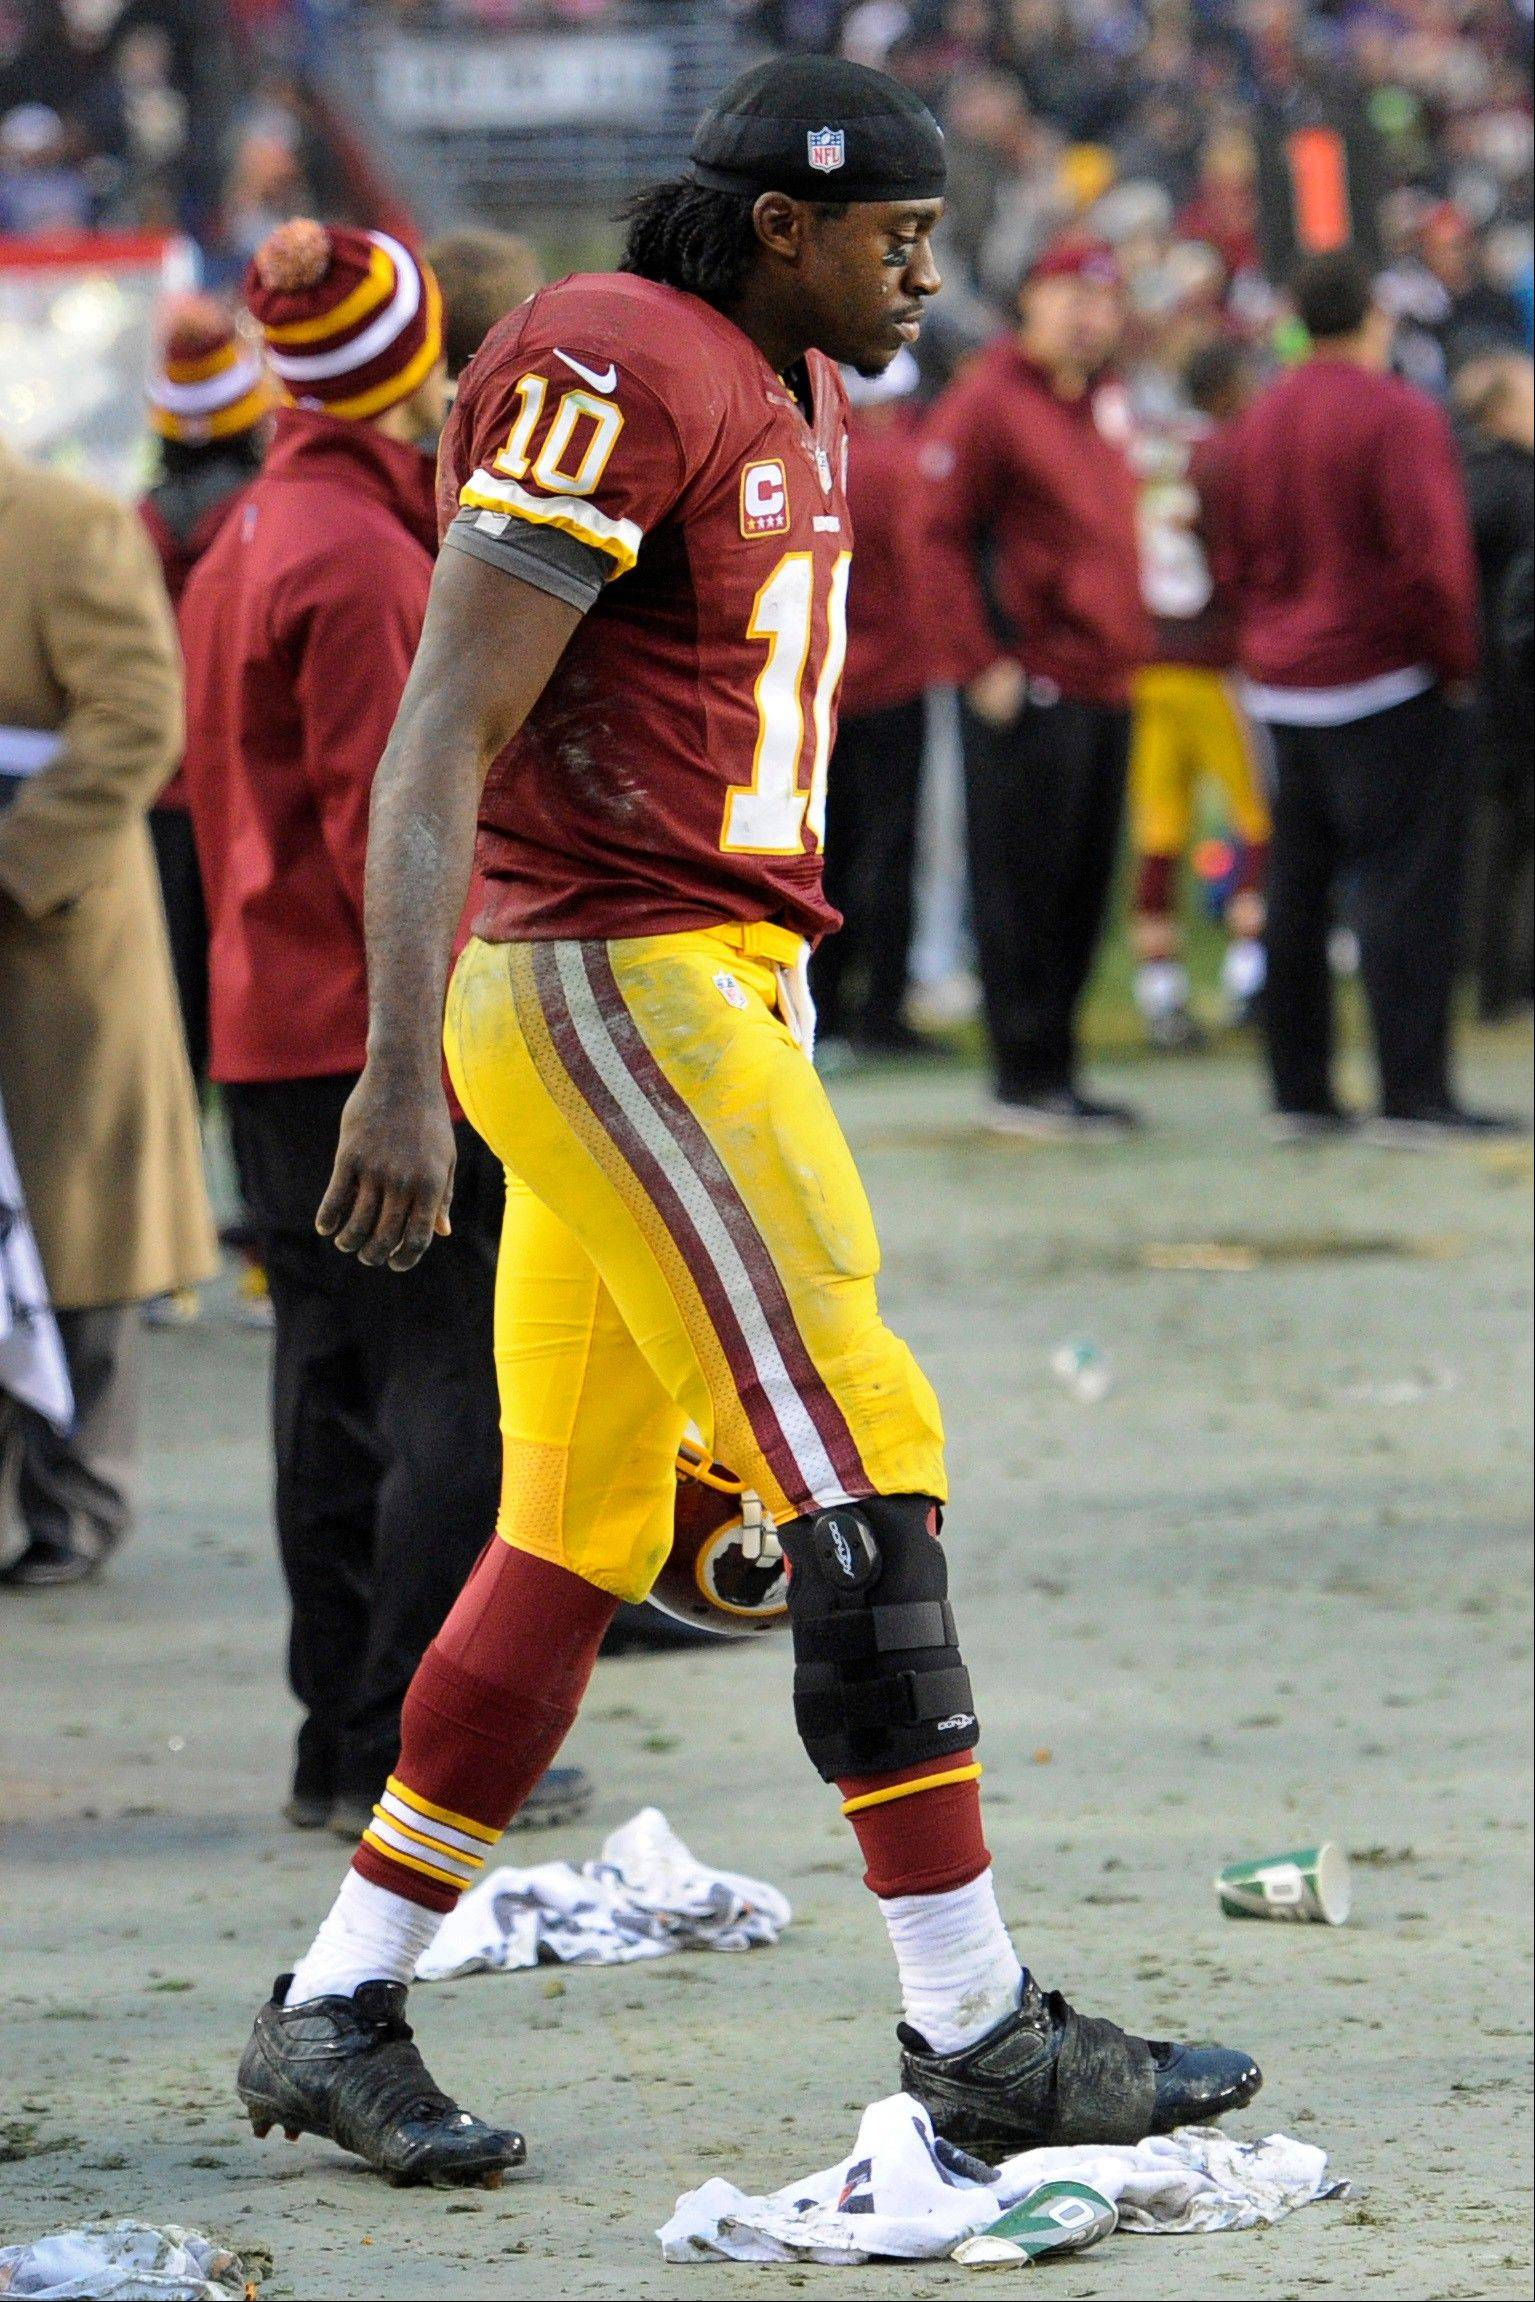 Bears' playoff hopes may rest with RG3's knee